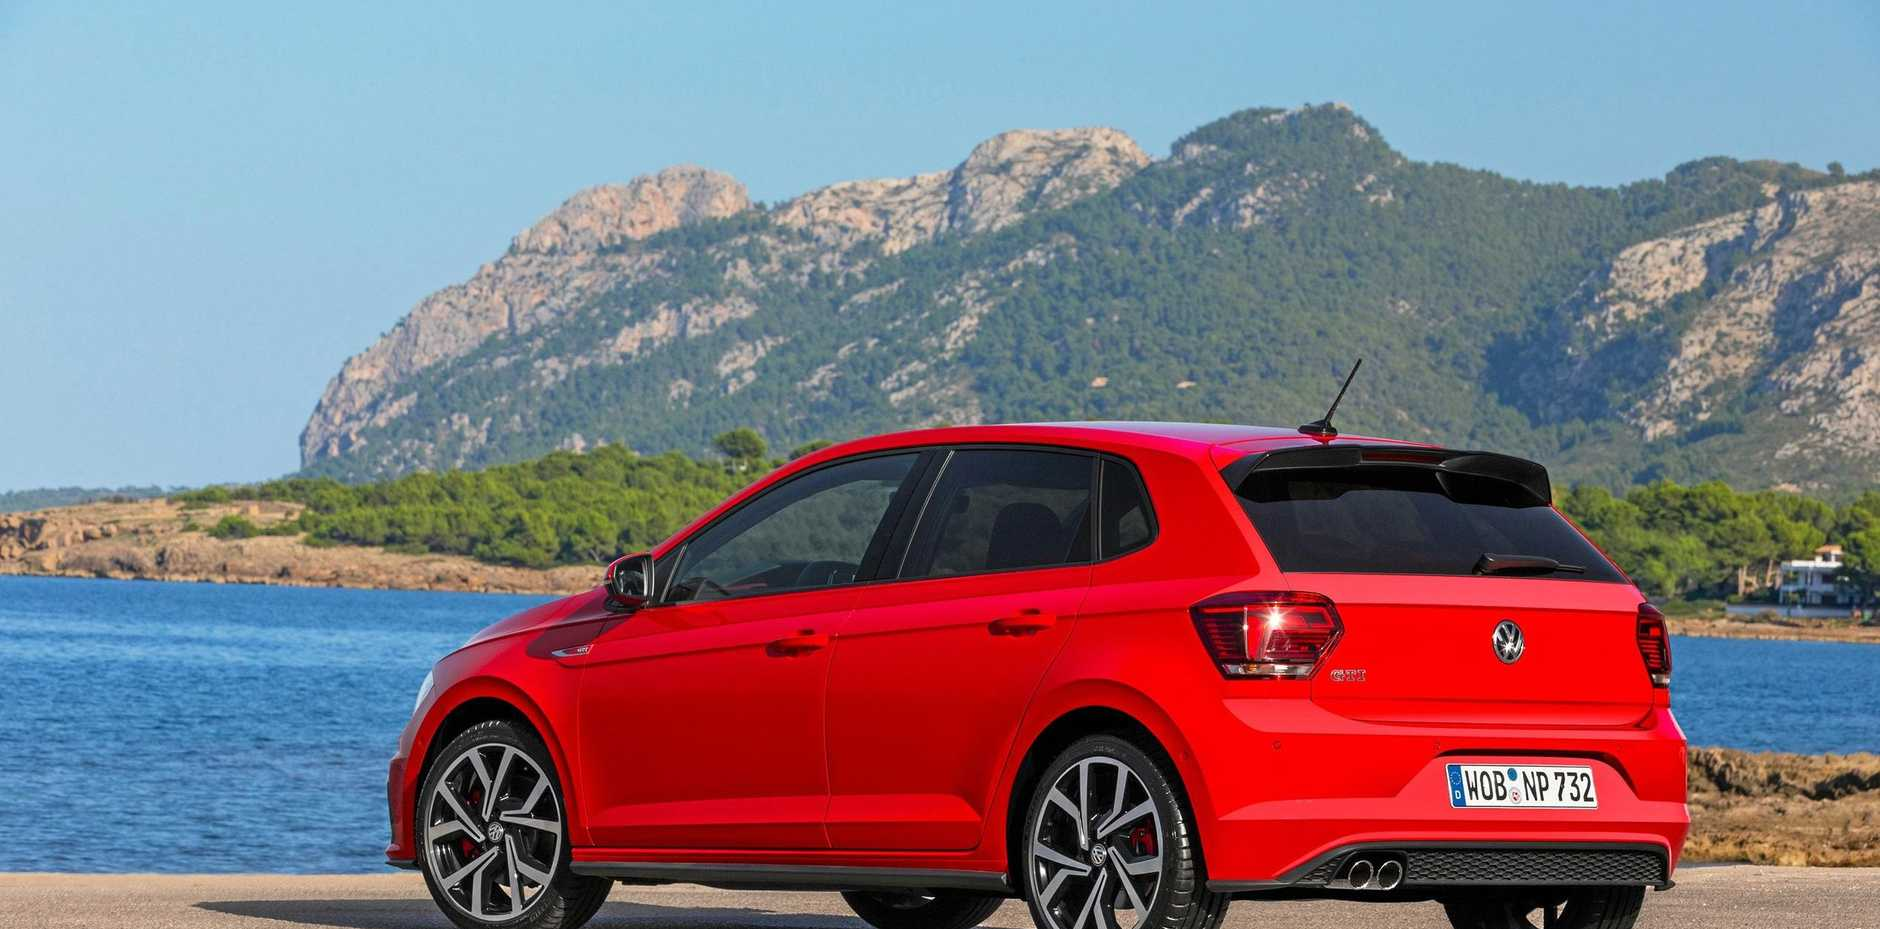 The Volkswagen Polo GTI is priced from $30,990 plus on-roads, and will arrive during August.